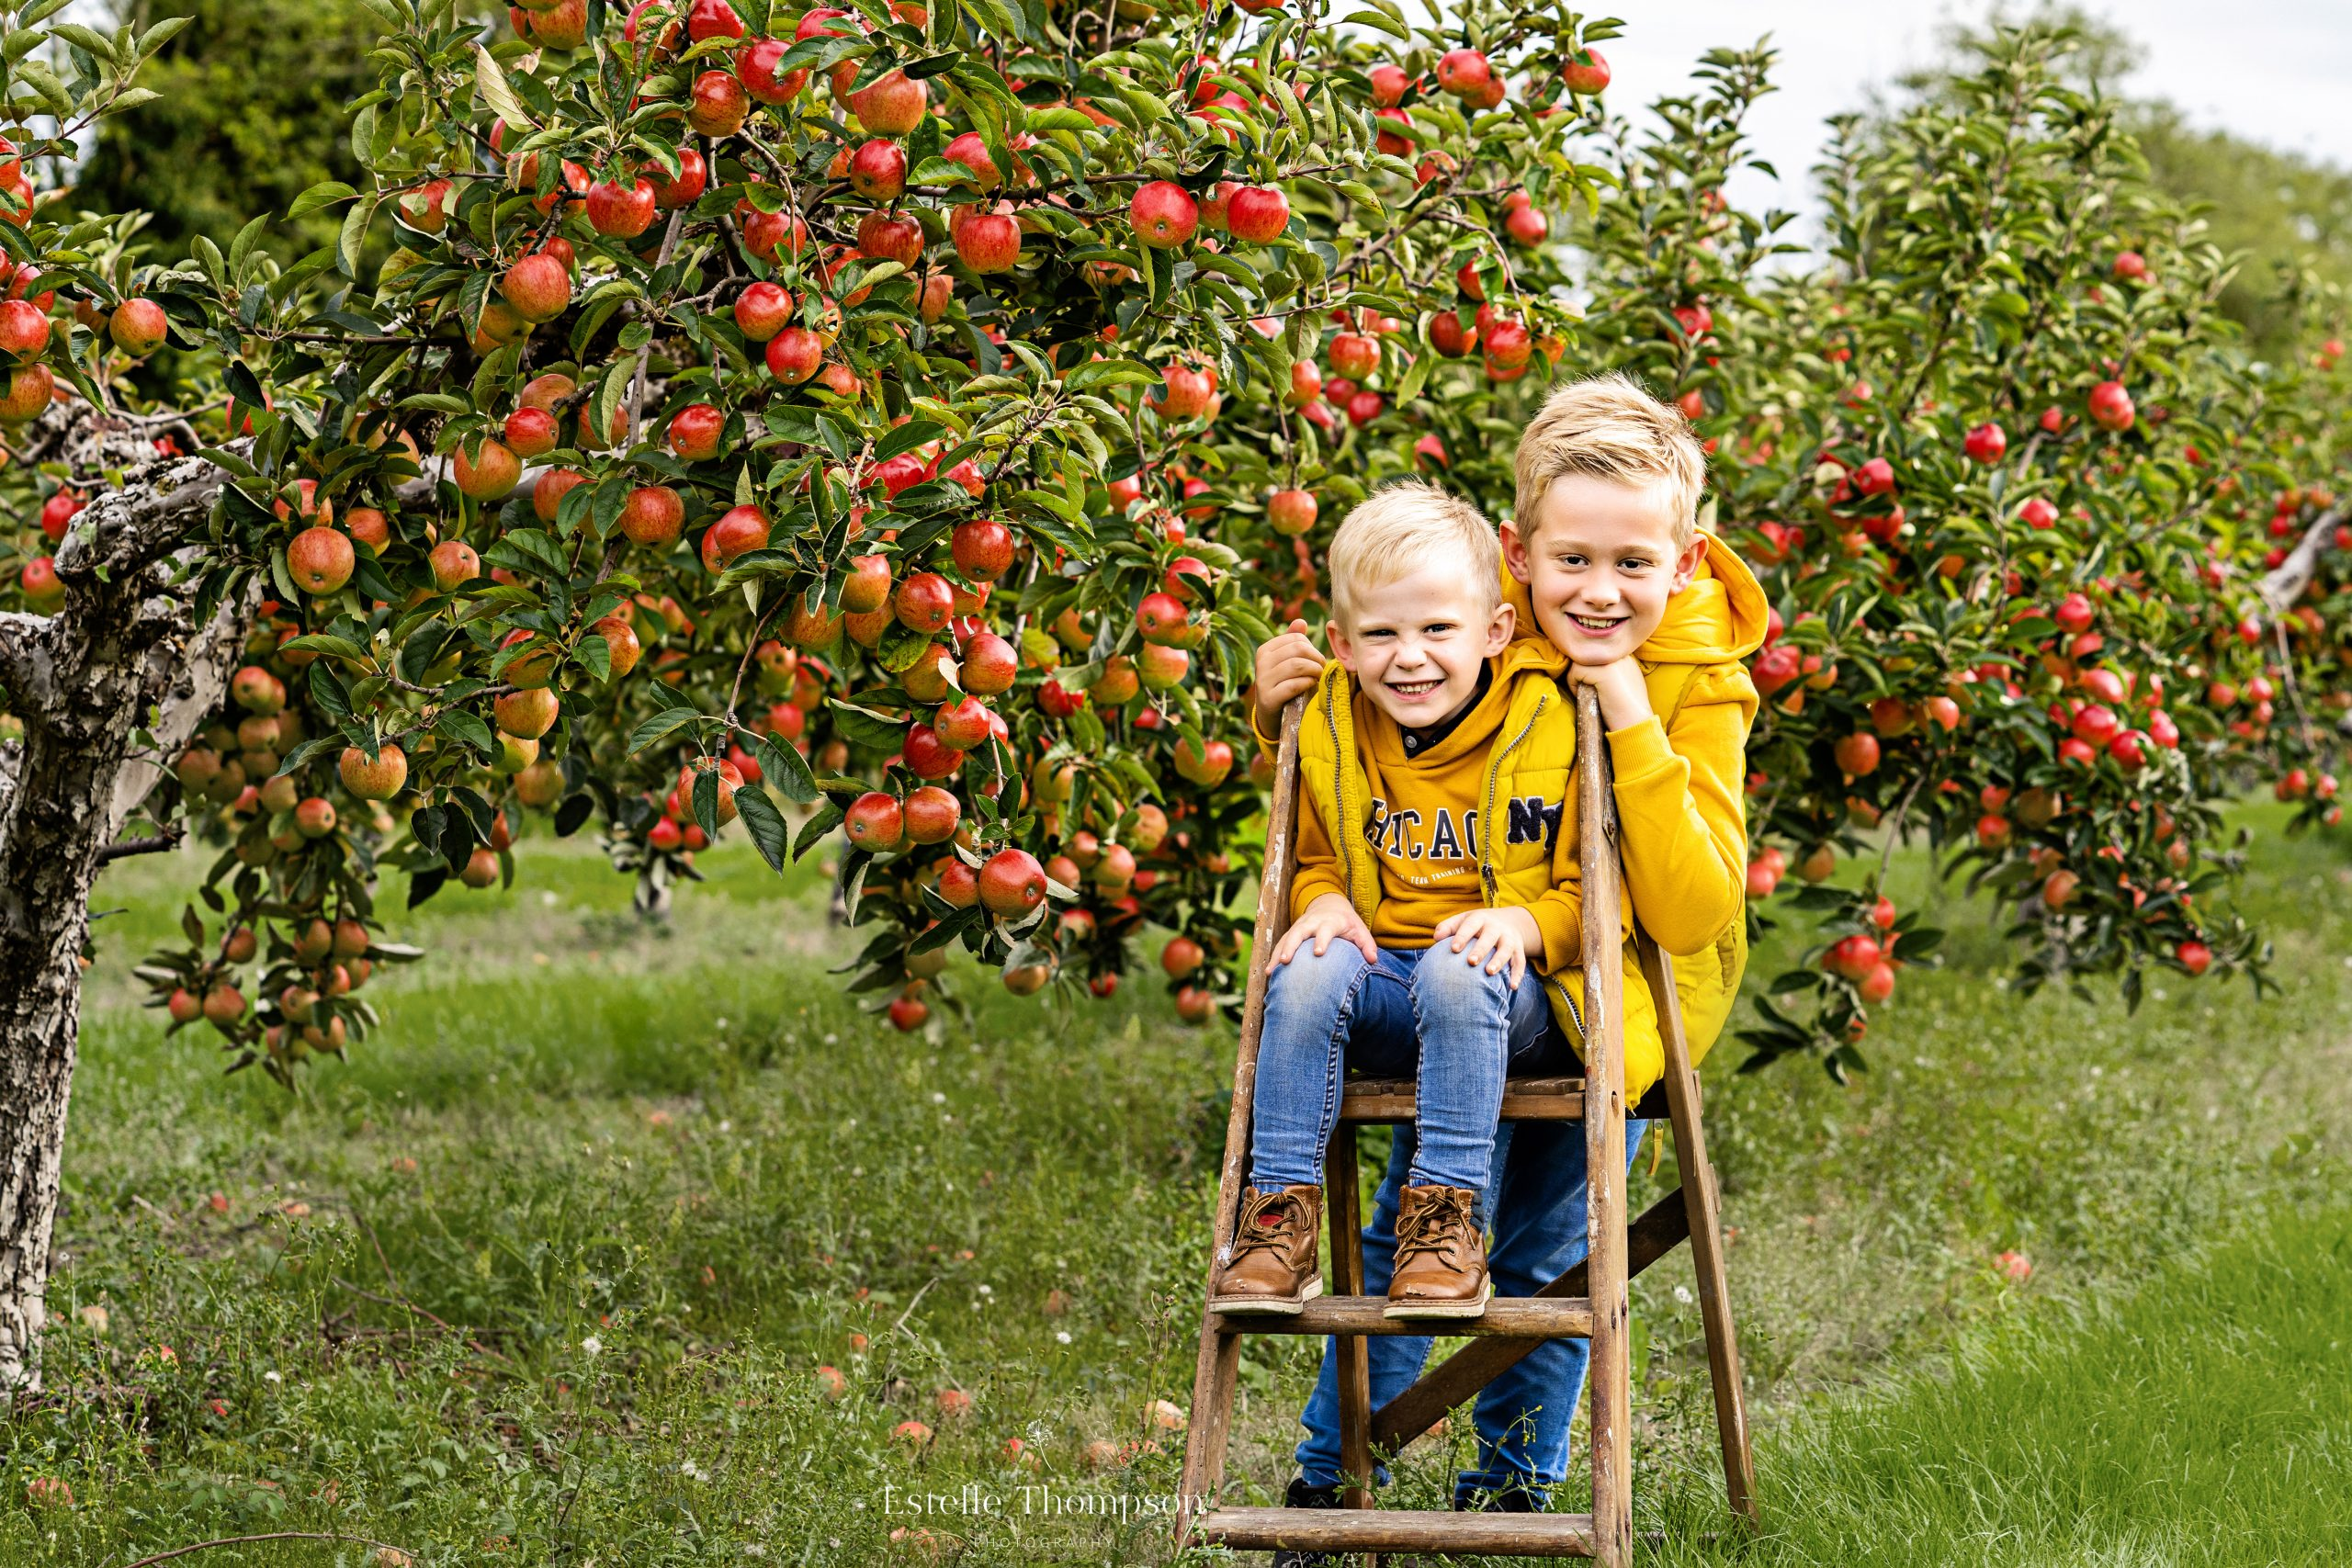 Two brothers sit on a wooden ladder in an apple orchard in kent for a family photoshoot